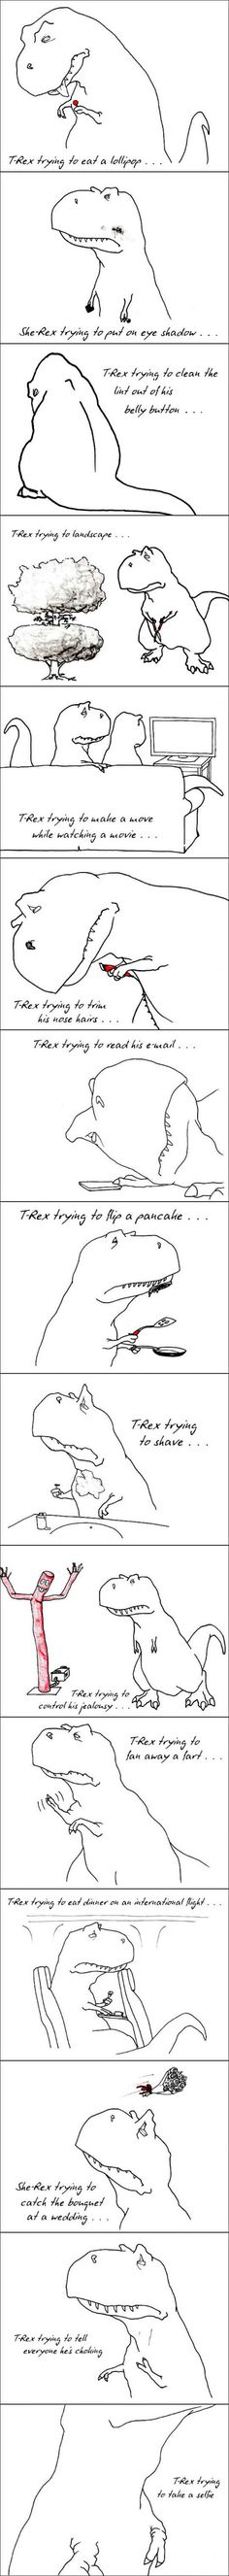 T-Rex Trying To Do Everyday Things